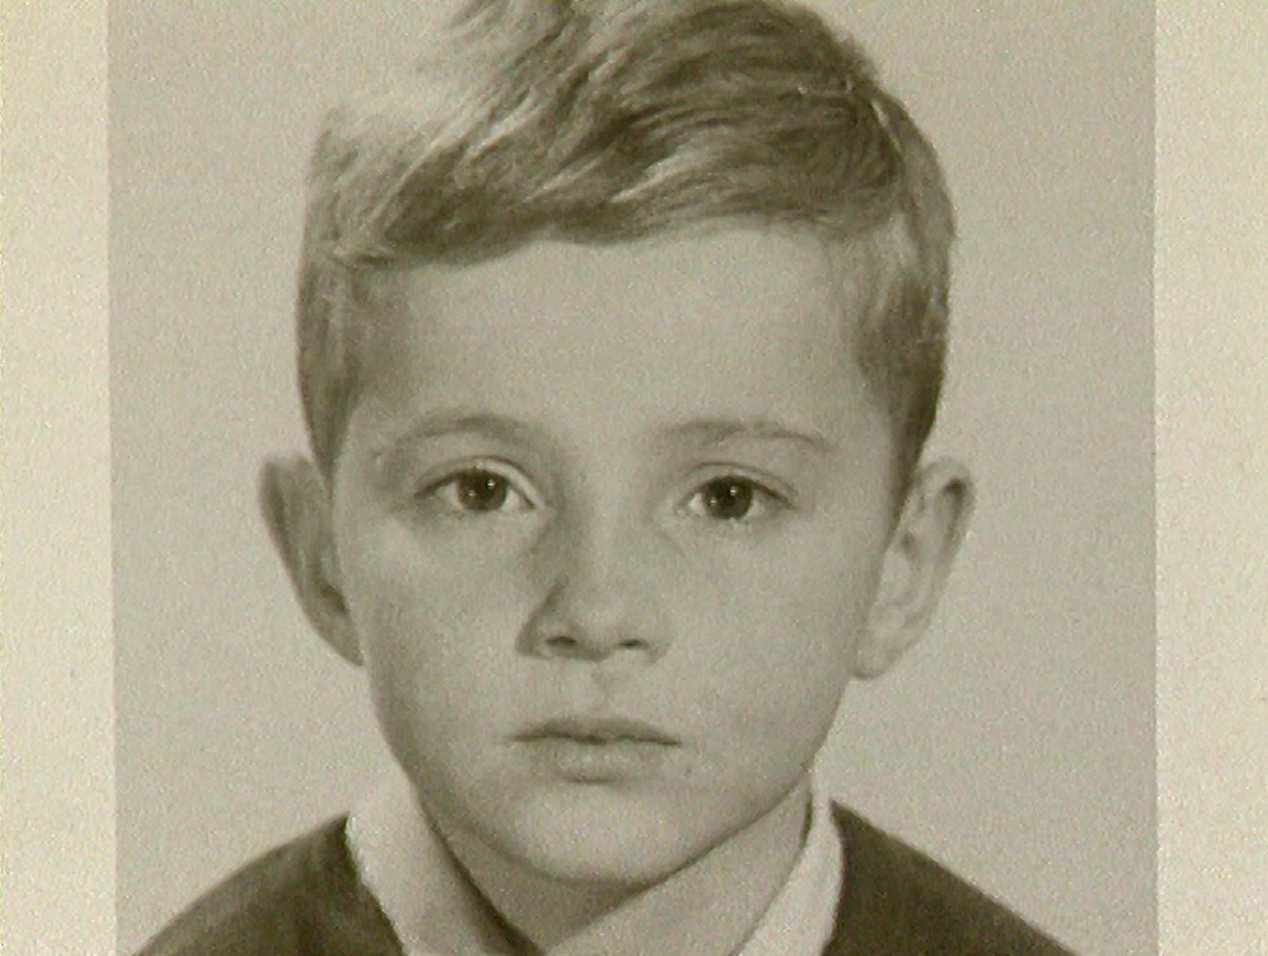 Thierry Barrigue enfant.